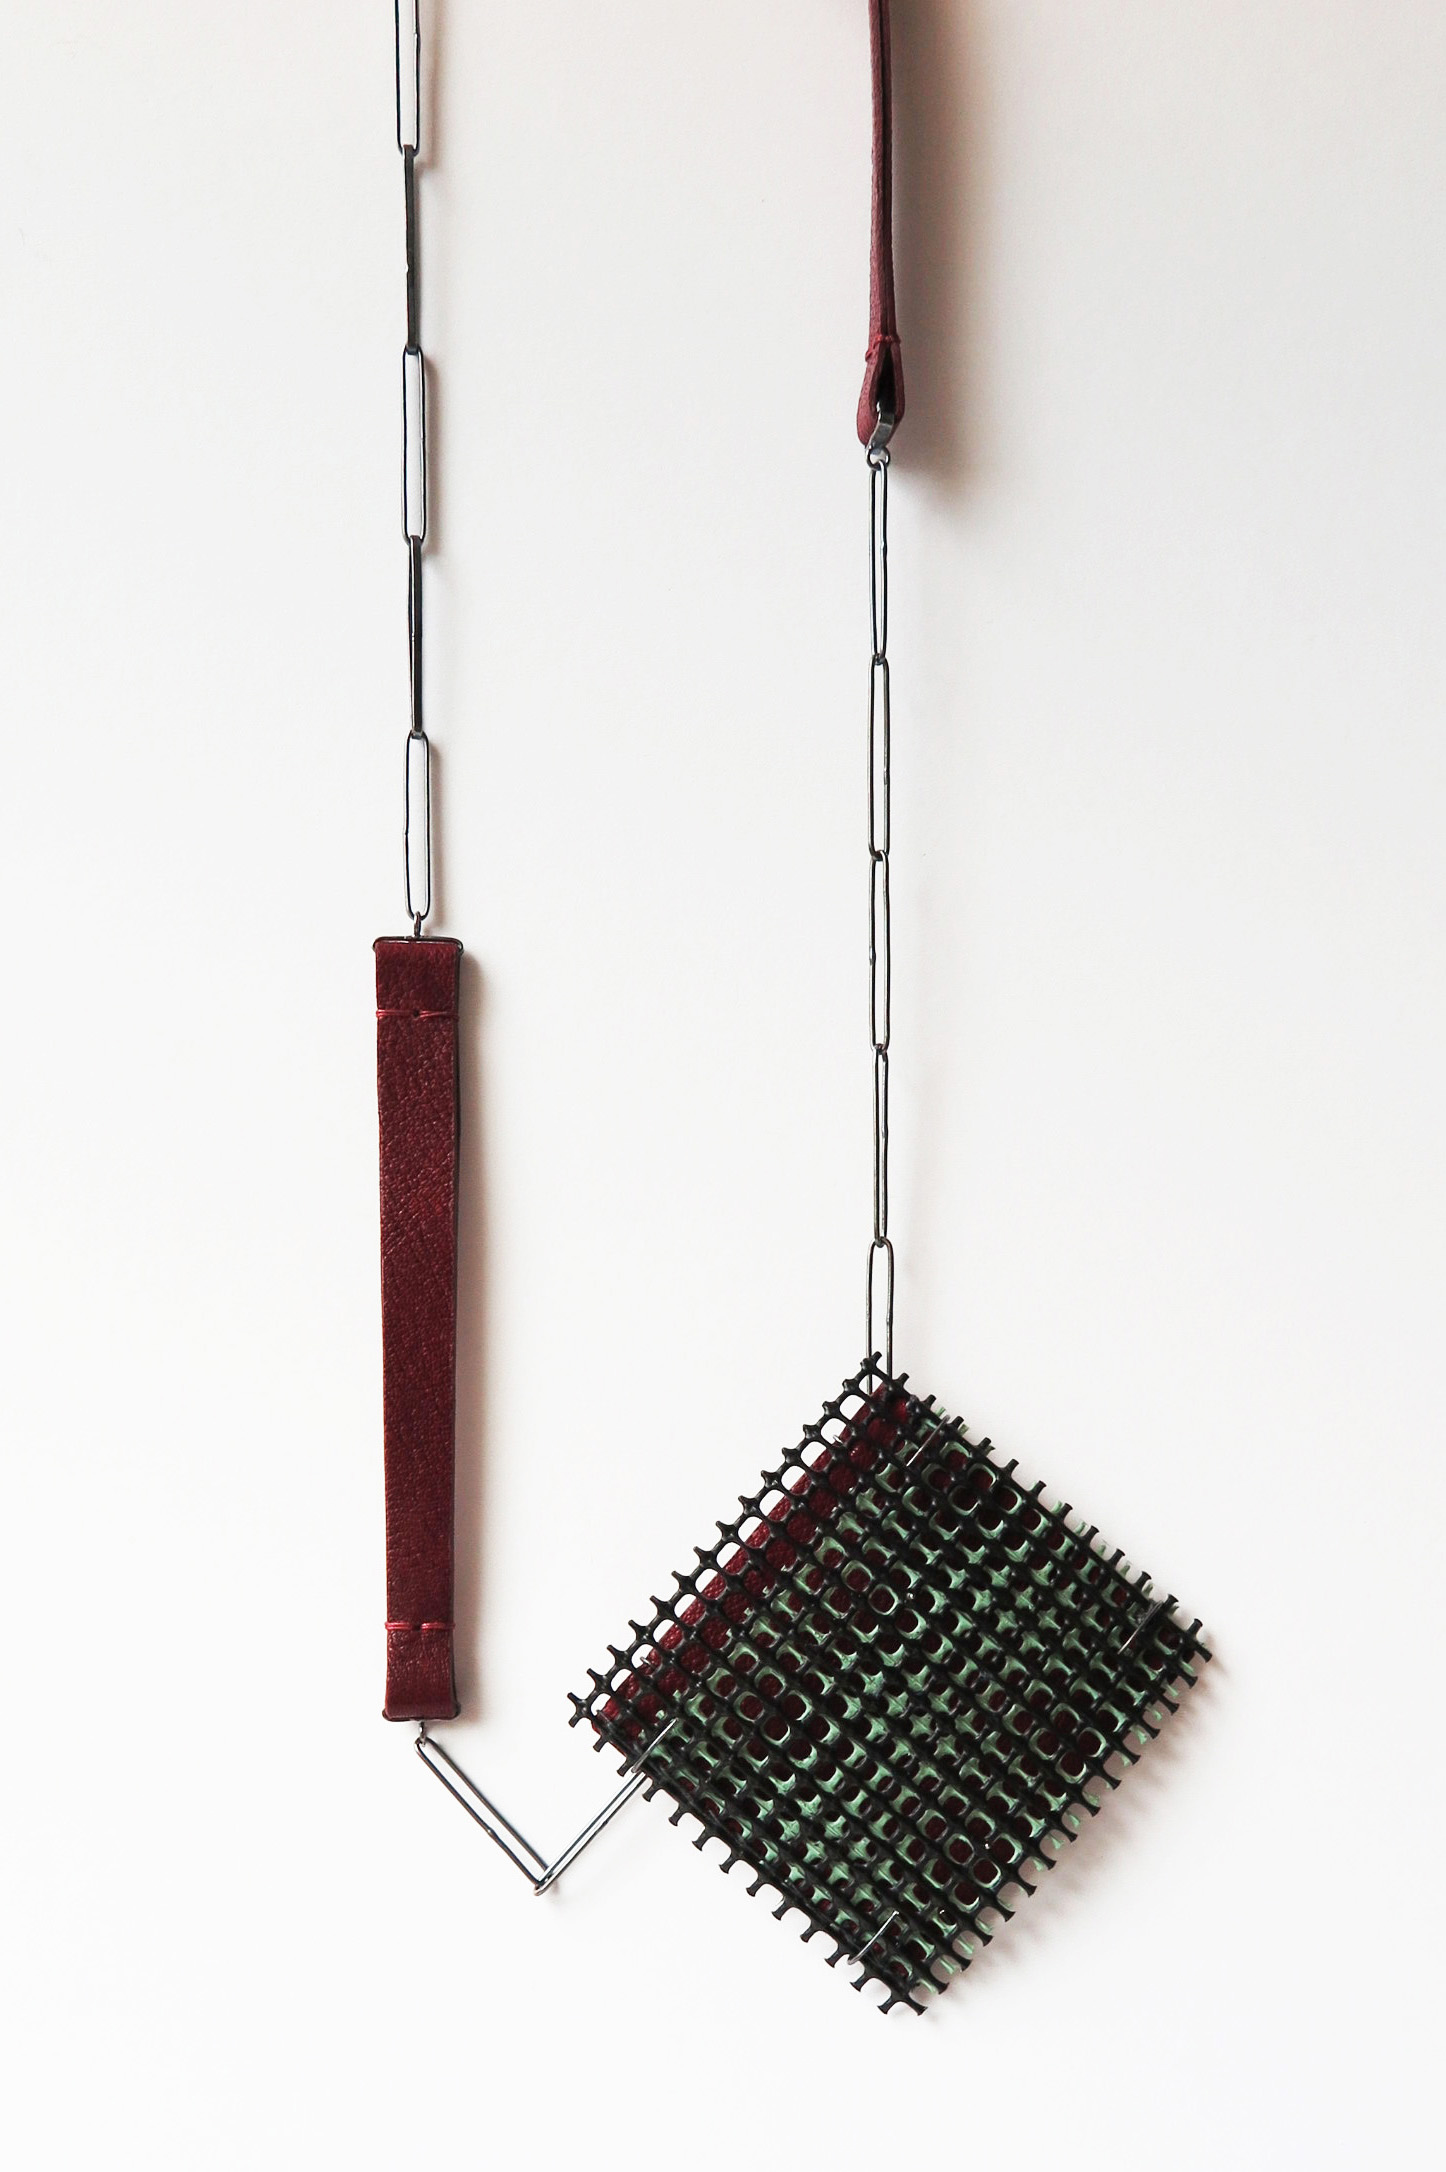 (5-3) layered pendant_pale green_8×1.3×7.3(H)cm length worn 37cm_sterling silver, plastic mesh, leather, pigment_2021